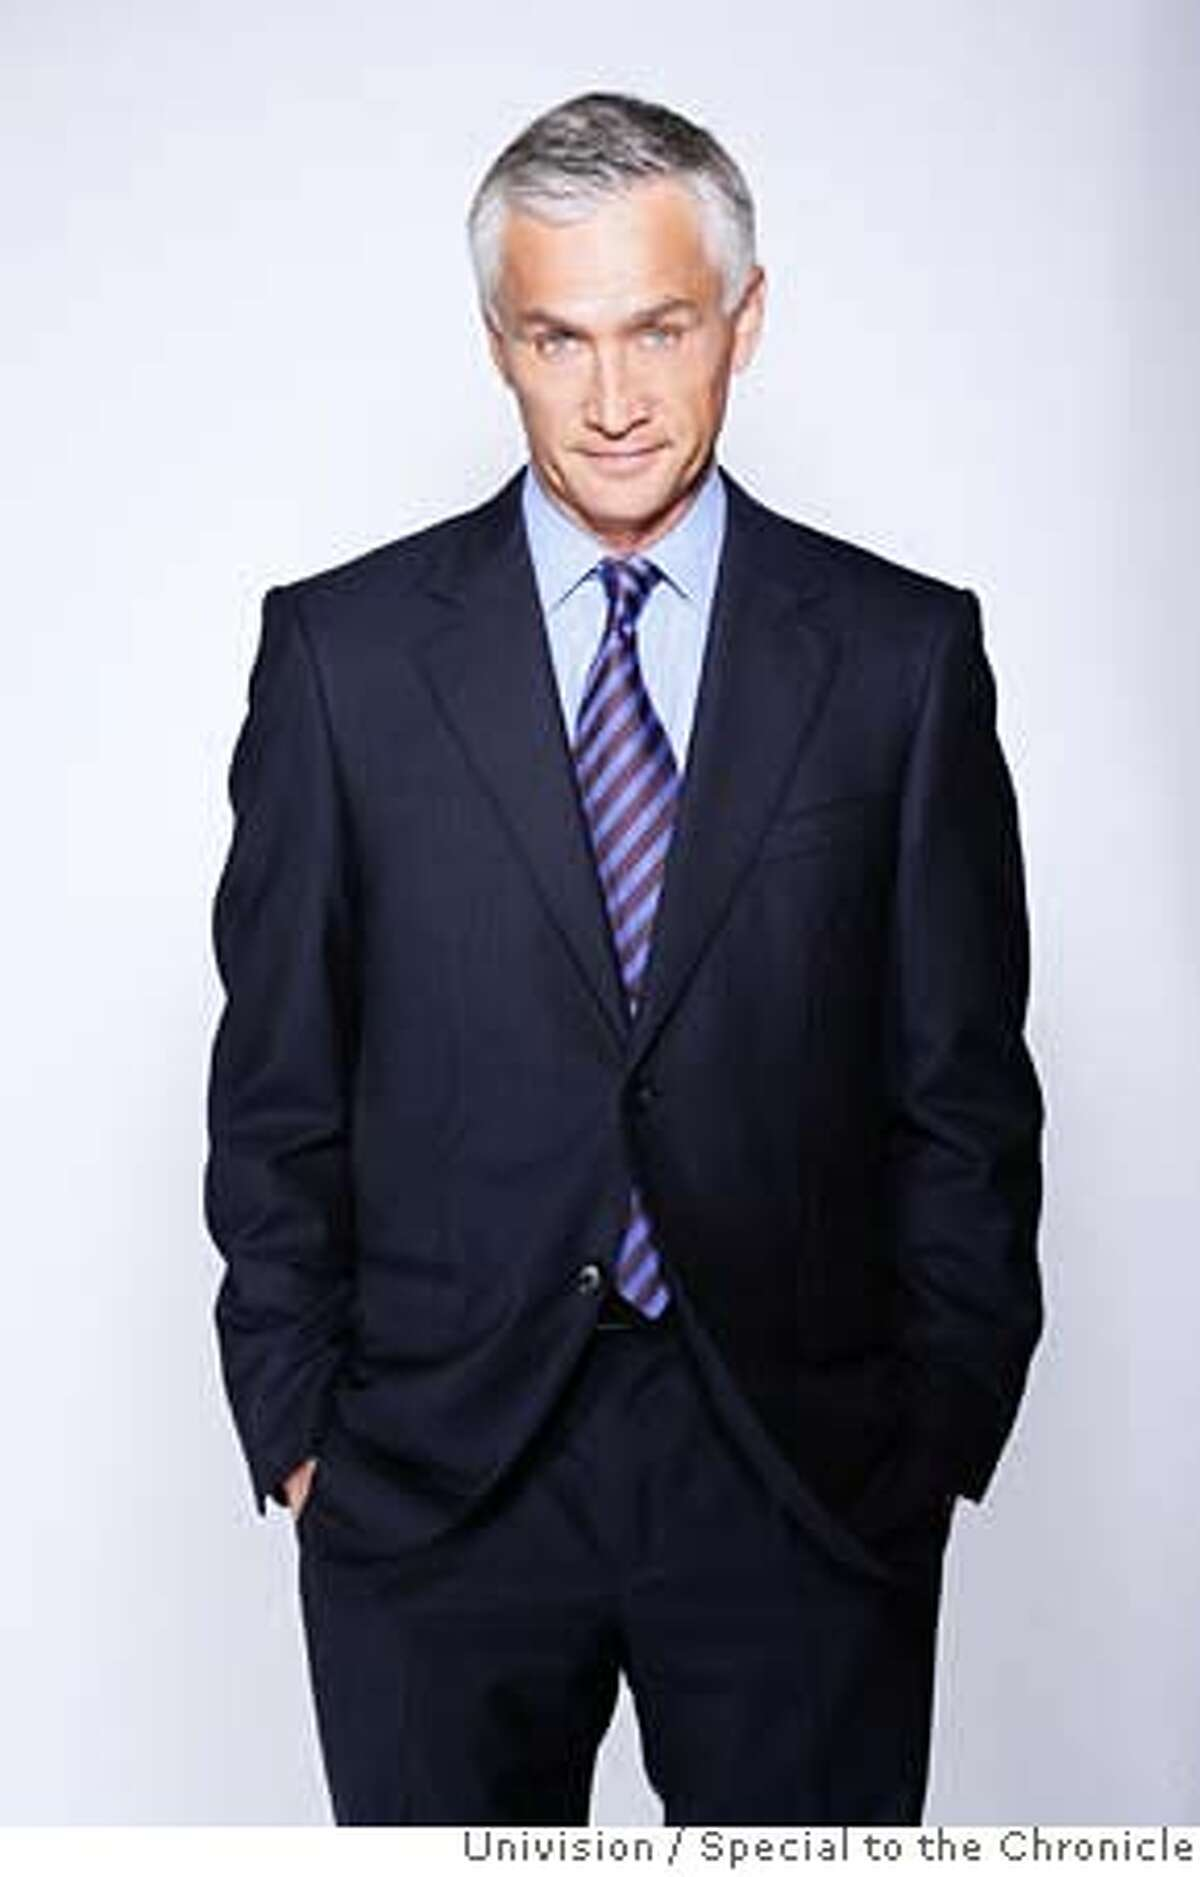 ###Live Caption:Undated photo of television news anchor Jorge Ramos. Photo Courtesy: Univision / Special to the Chronicle###Caption History:Undated photo of Jorge Ramos. Photo Courtesy: Special to the Chronicle###Notes:###Special Instructions: